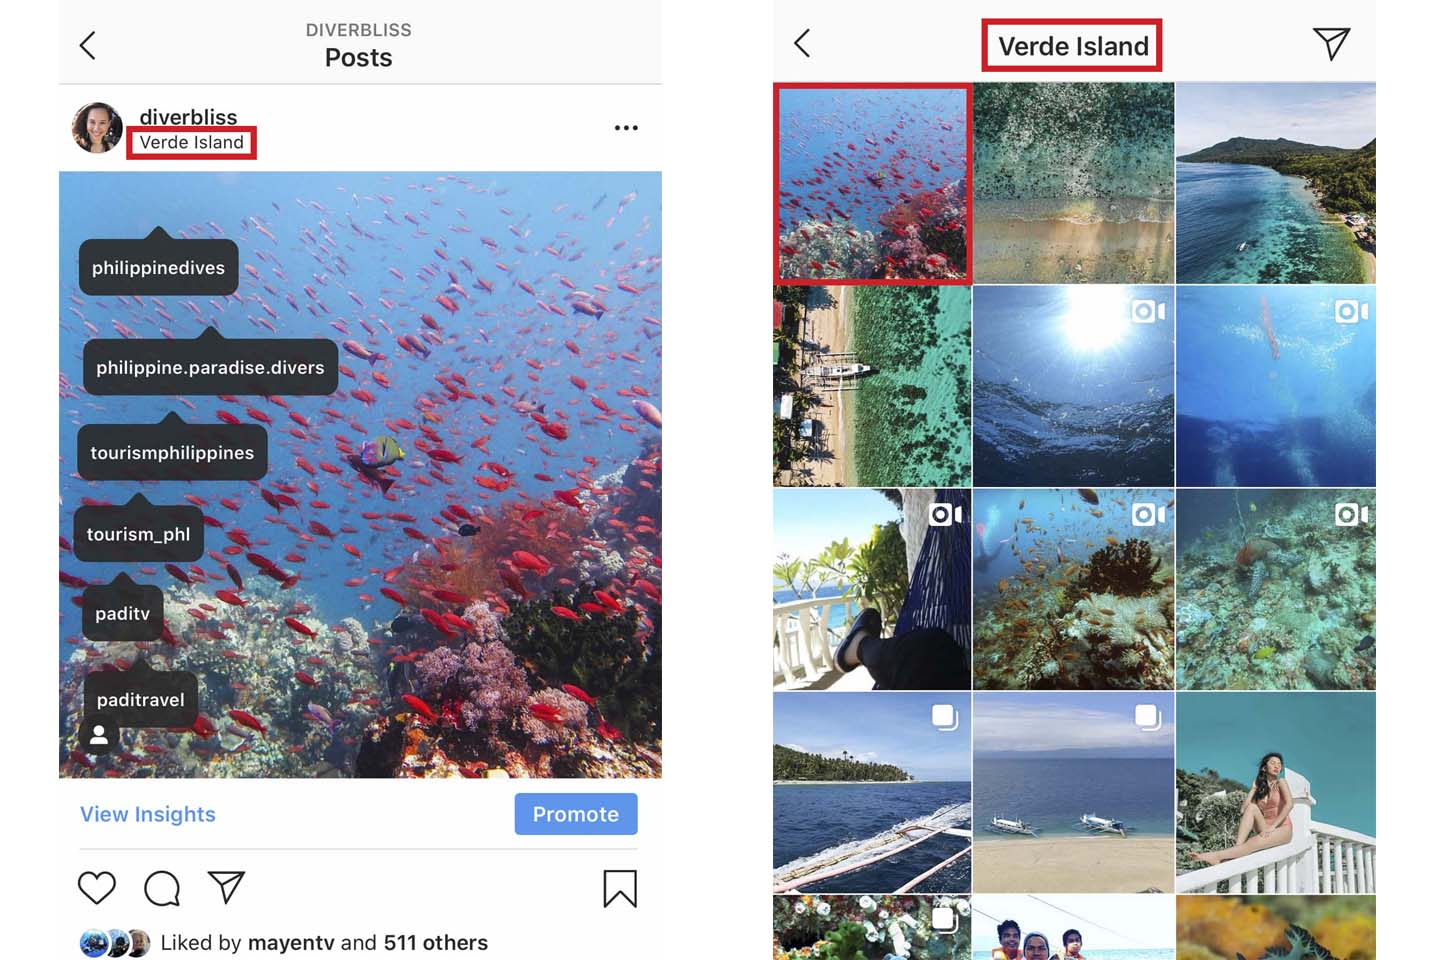 grow your ocean-inspired instagram account as an ocean advocate by using the correct geo-tag locations